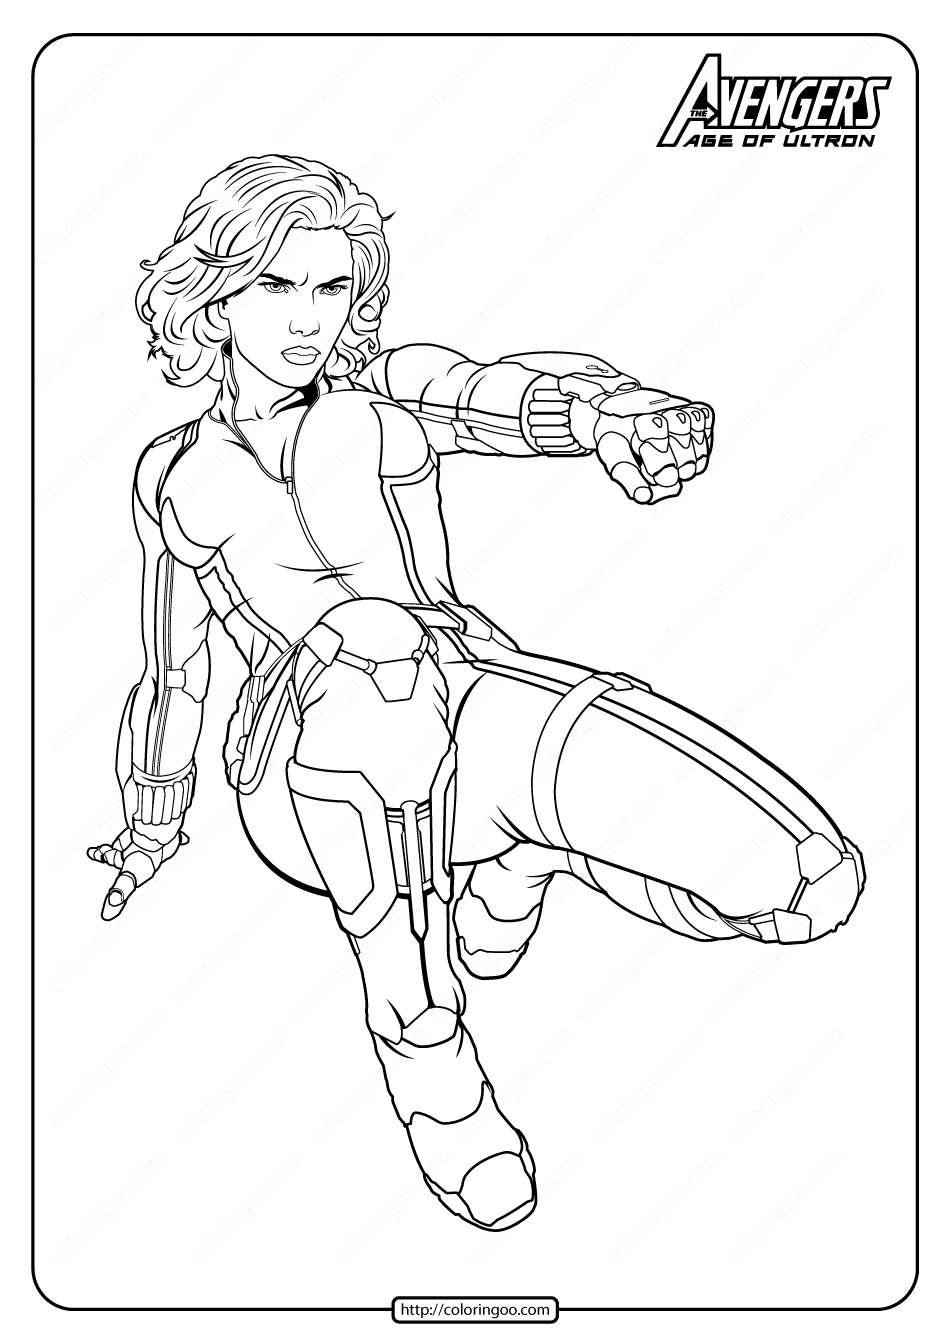 Marvel Avengers Black Widow Pdf Coloring Pages In 2020 Superhero Coloring Pages Avengers Coloring Avengers Coloring Pages